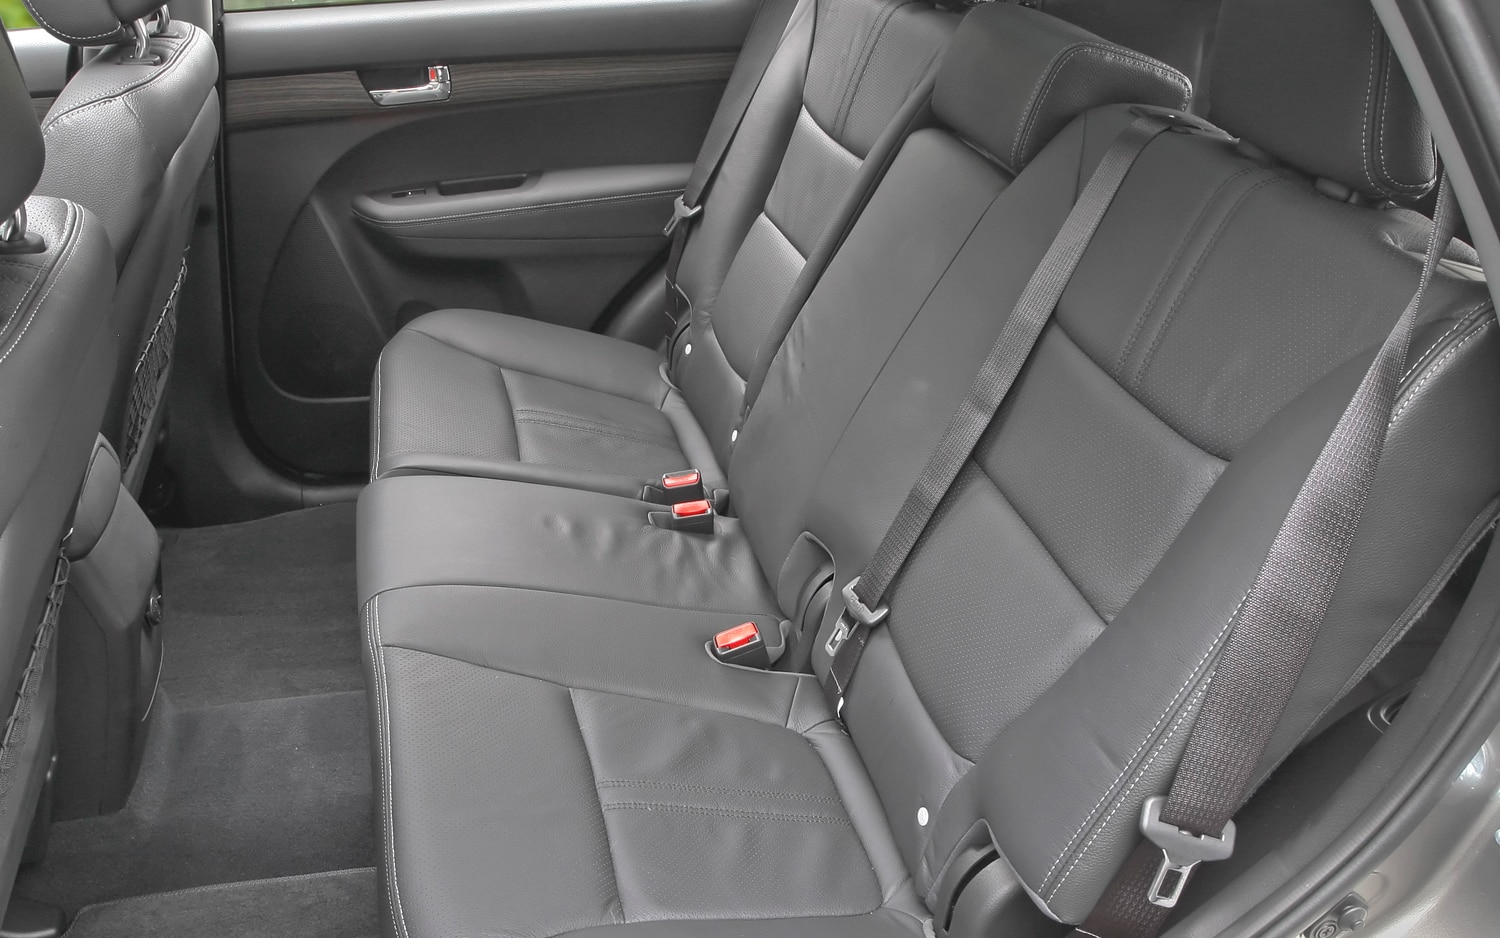 2012 Kia Sorento Rear Seating 2